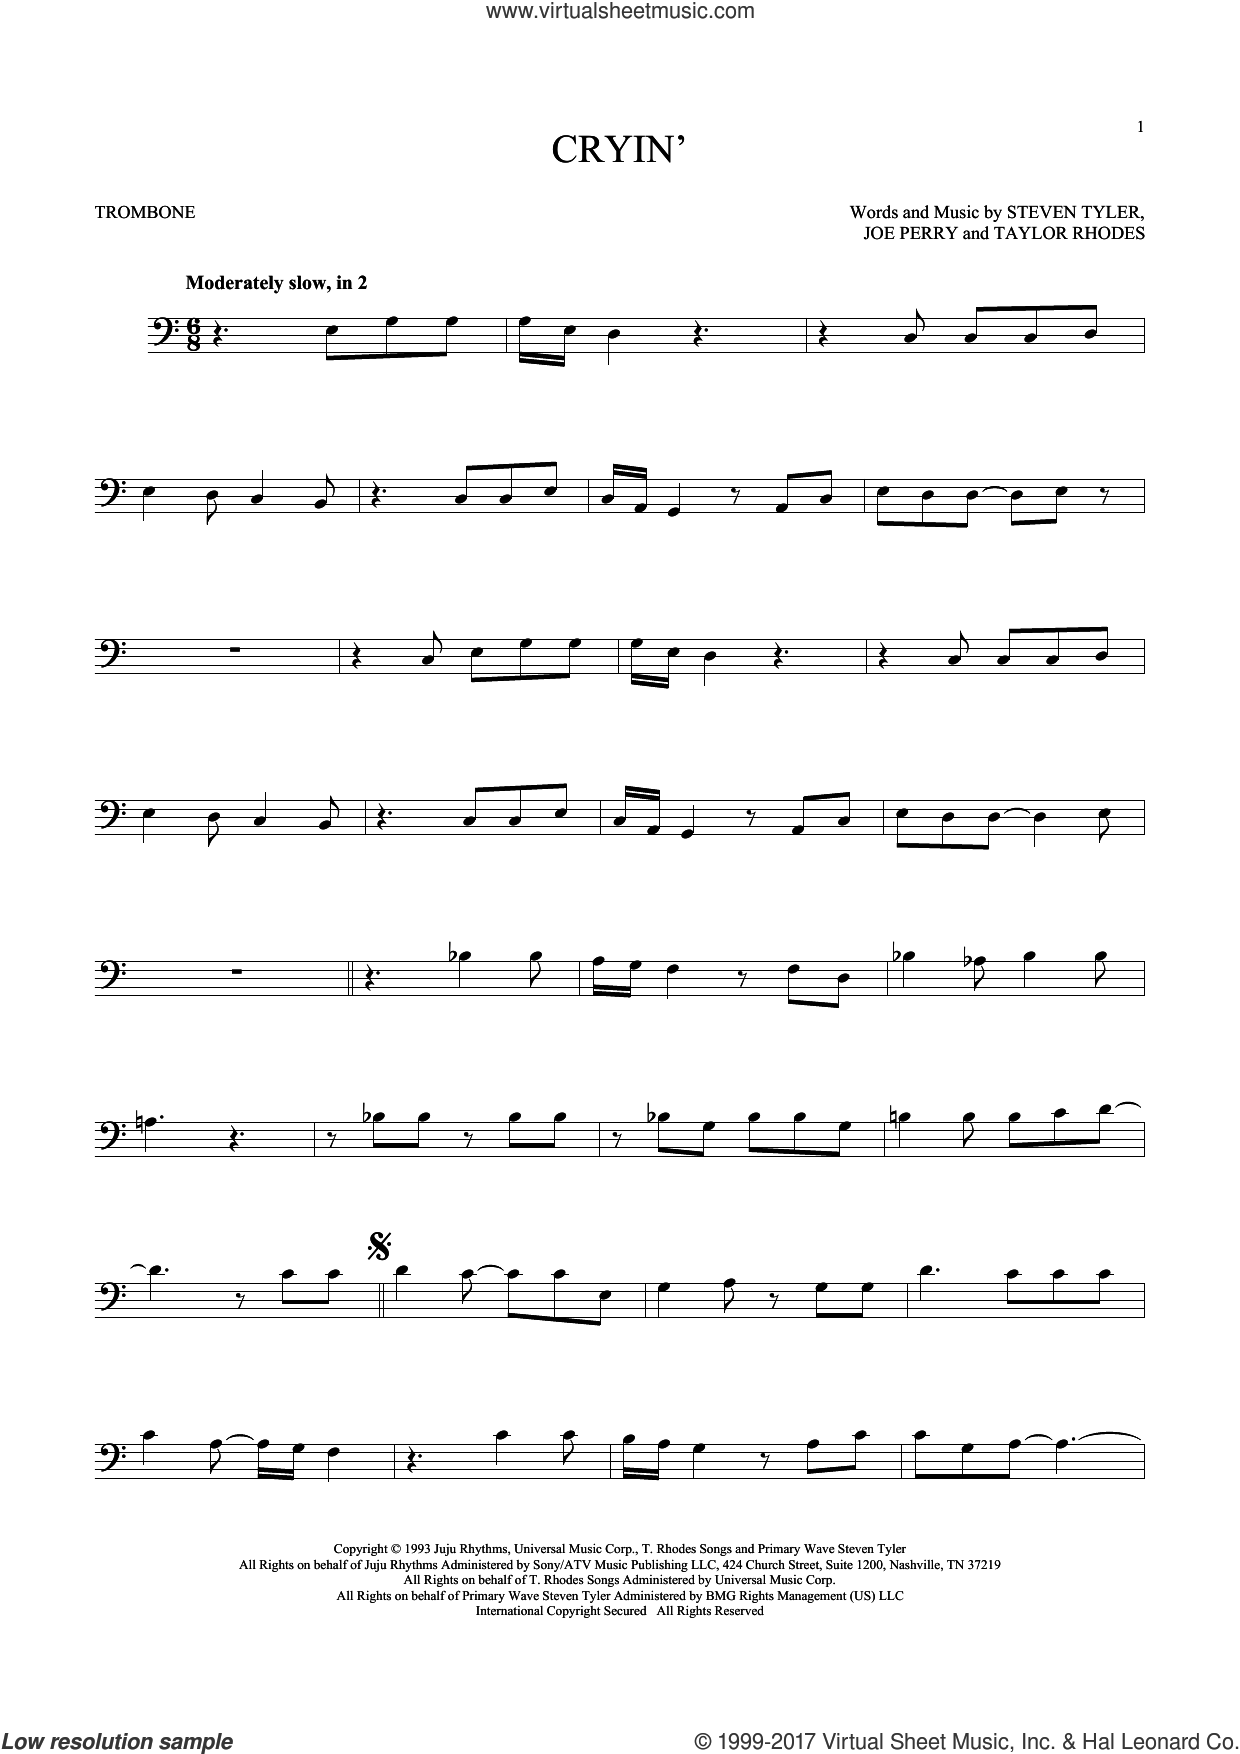 Cryin' sheet music for trombone solo by Aerosmith, Joe Perry, Steven Tyler and Taylor Rhodes, intermediate skill level